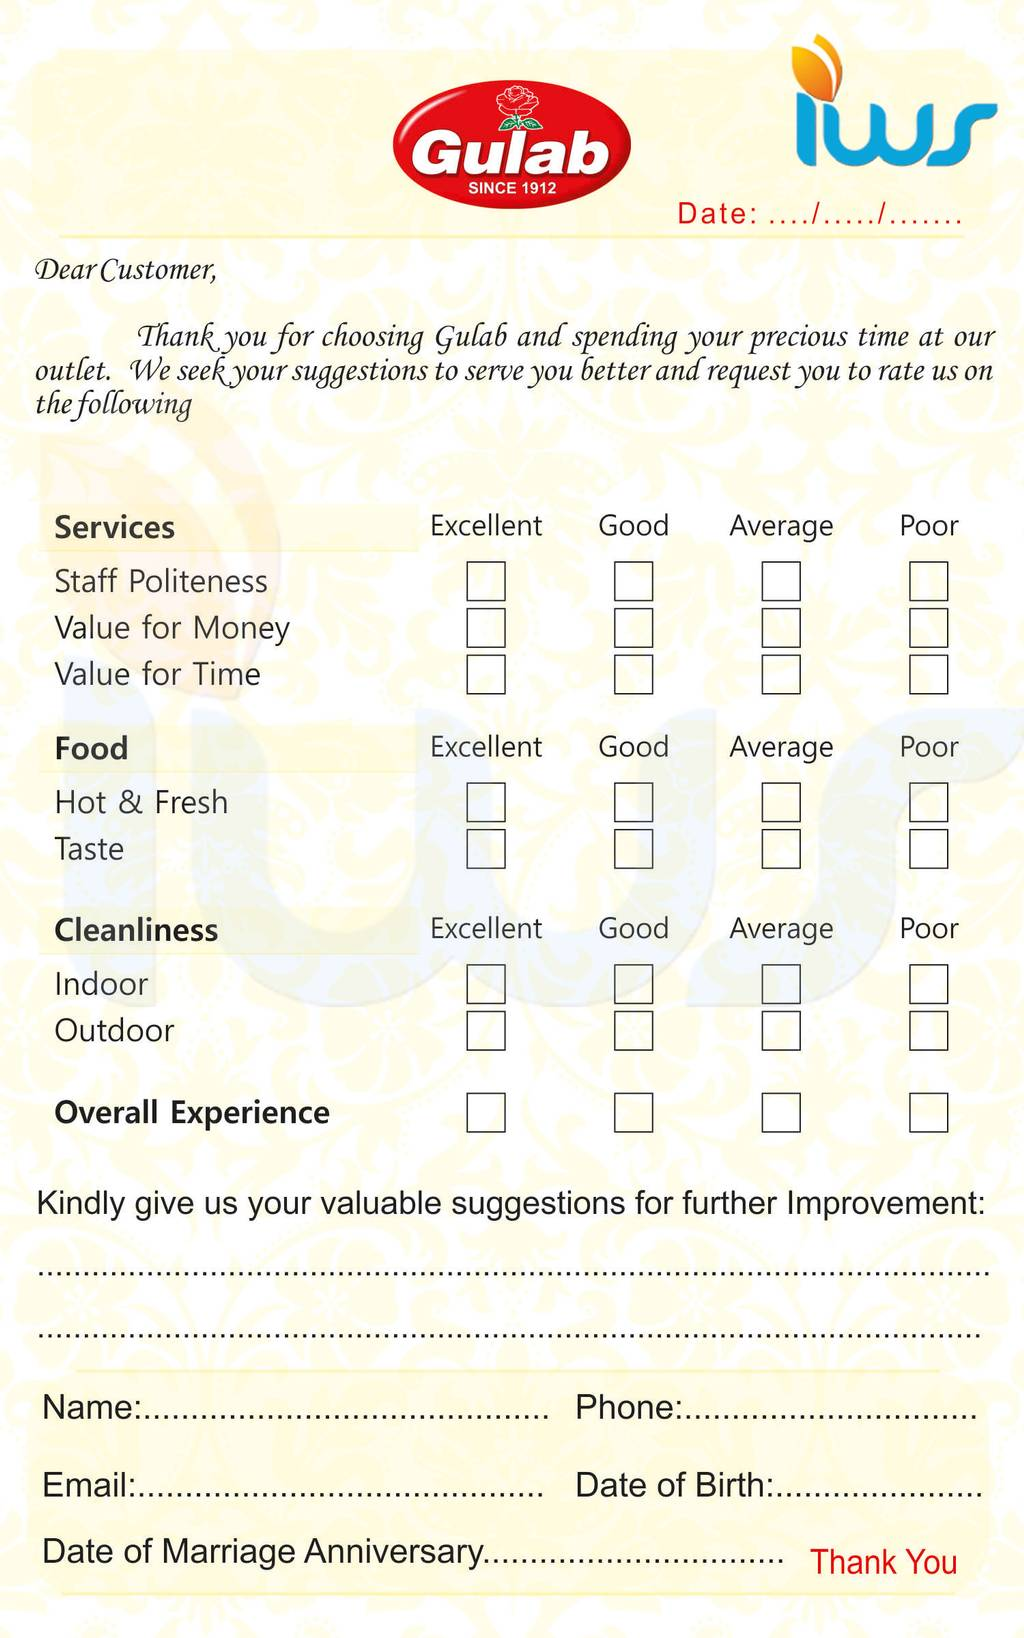 importance-customer-feedback-for-restaurant-image